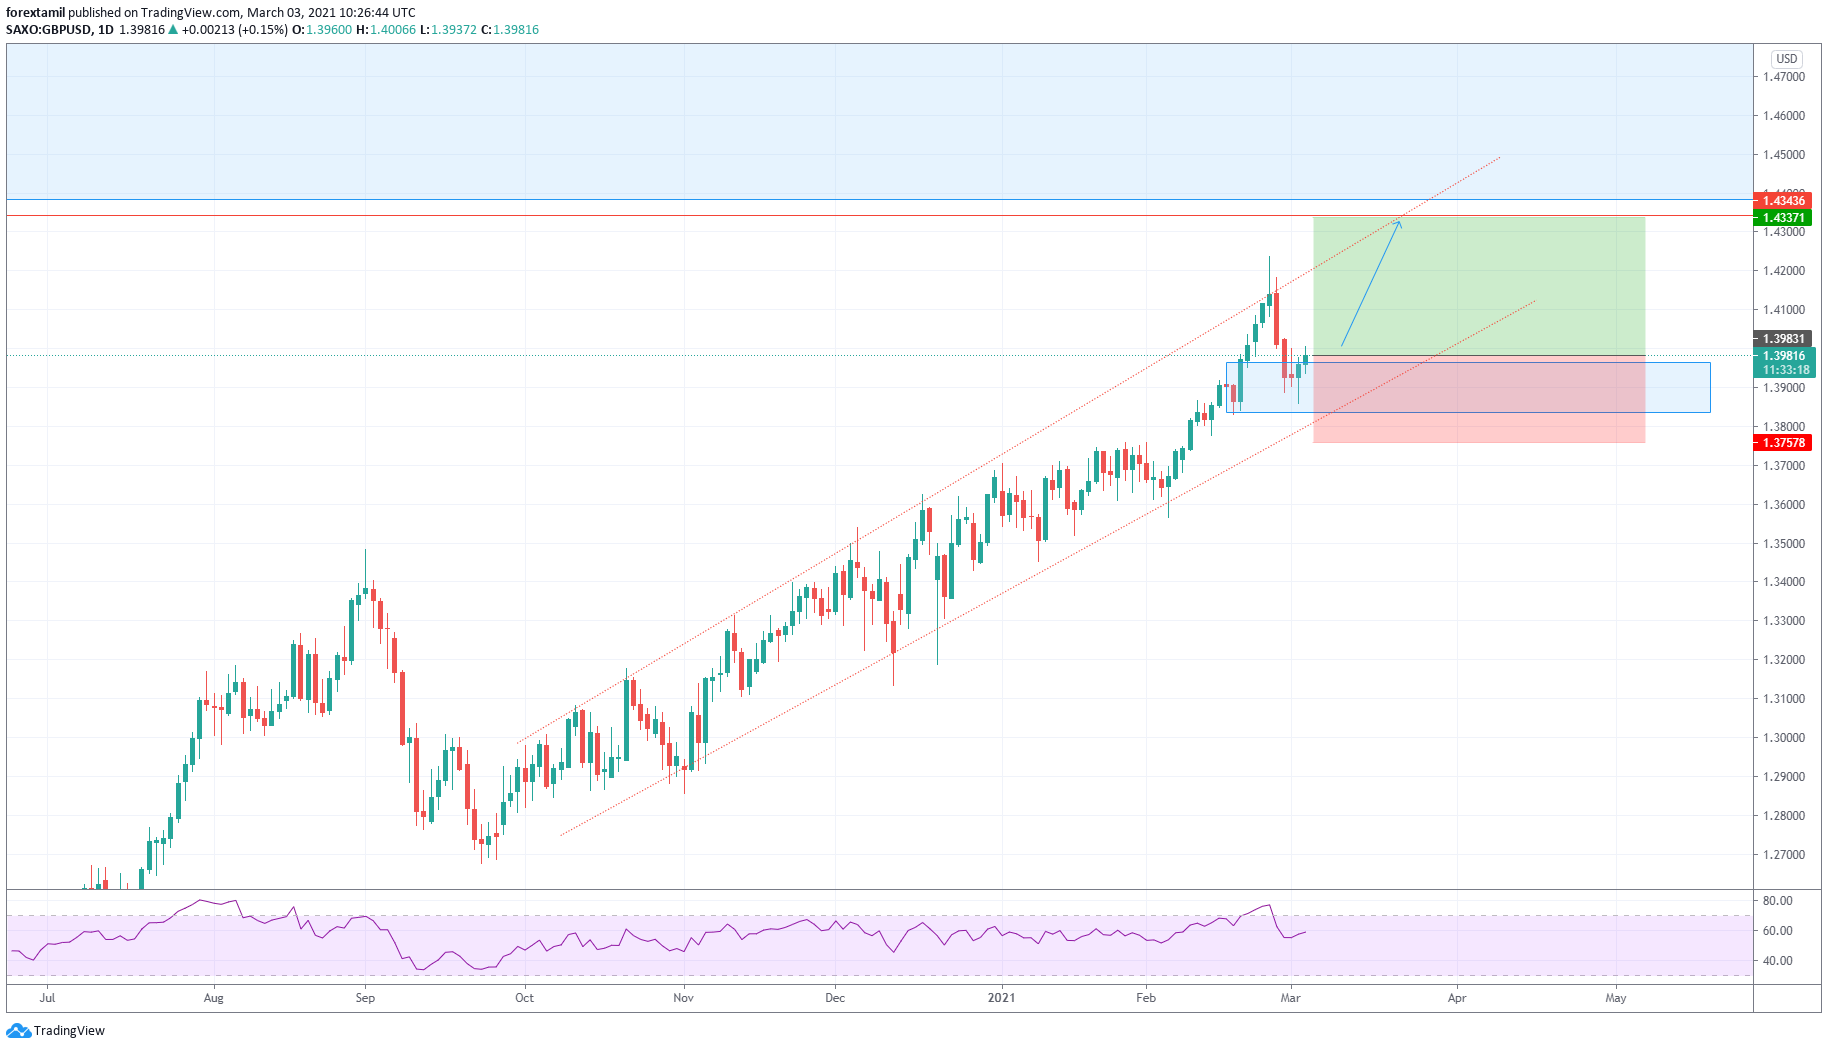 Live Challenging Signal Buy GBPUSD @ 1.39798